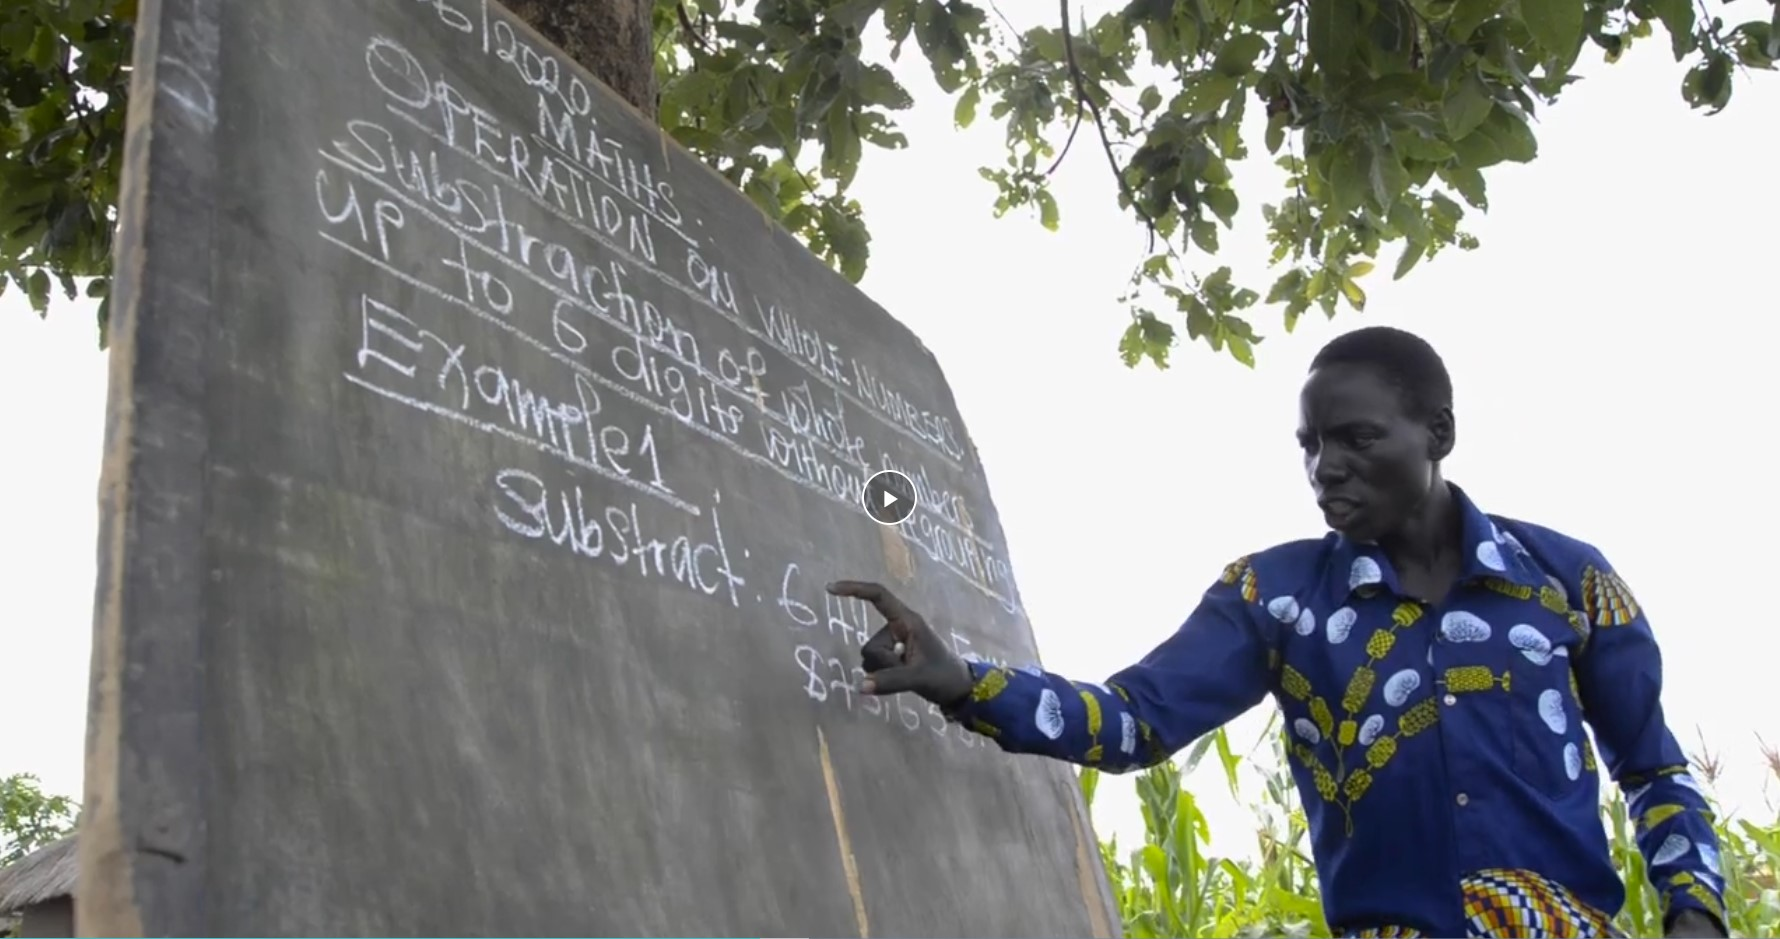 Santos teaches math to students in the open in Uganda